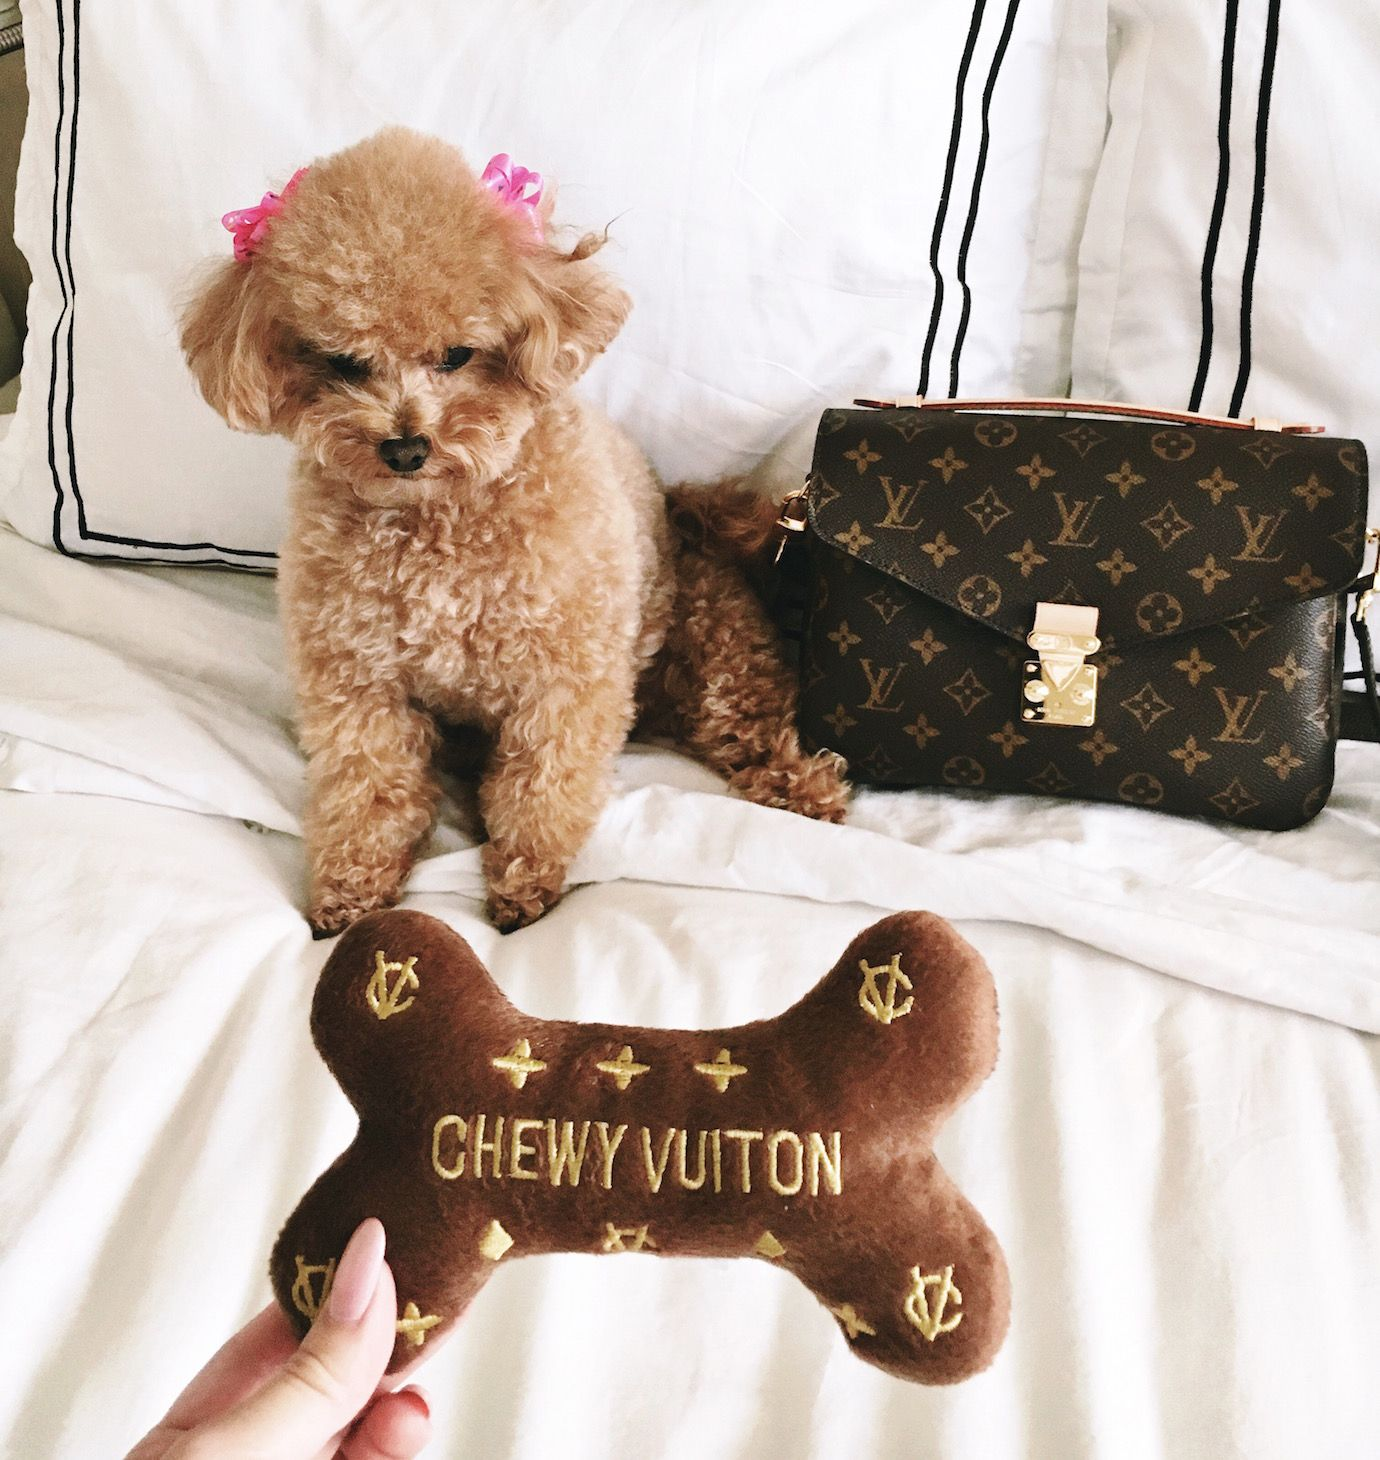 Louis Vuitton and puppy